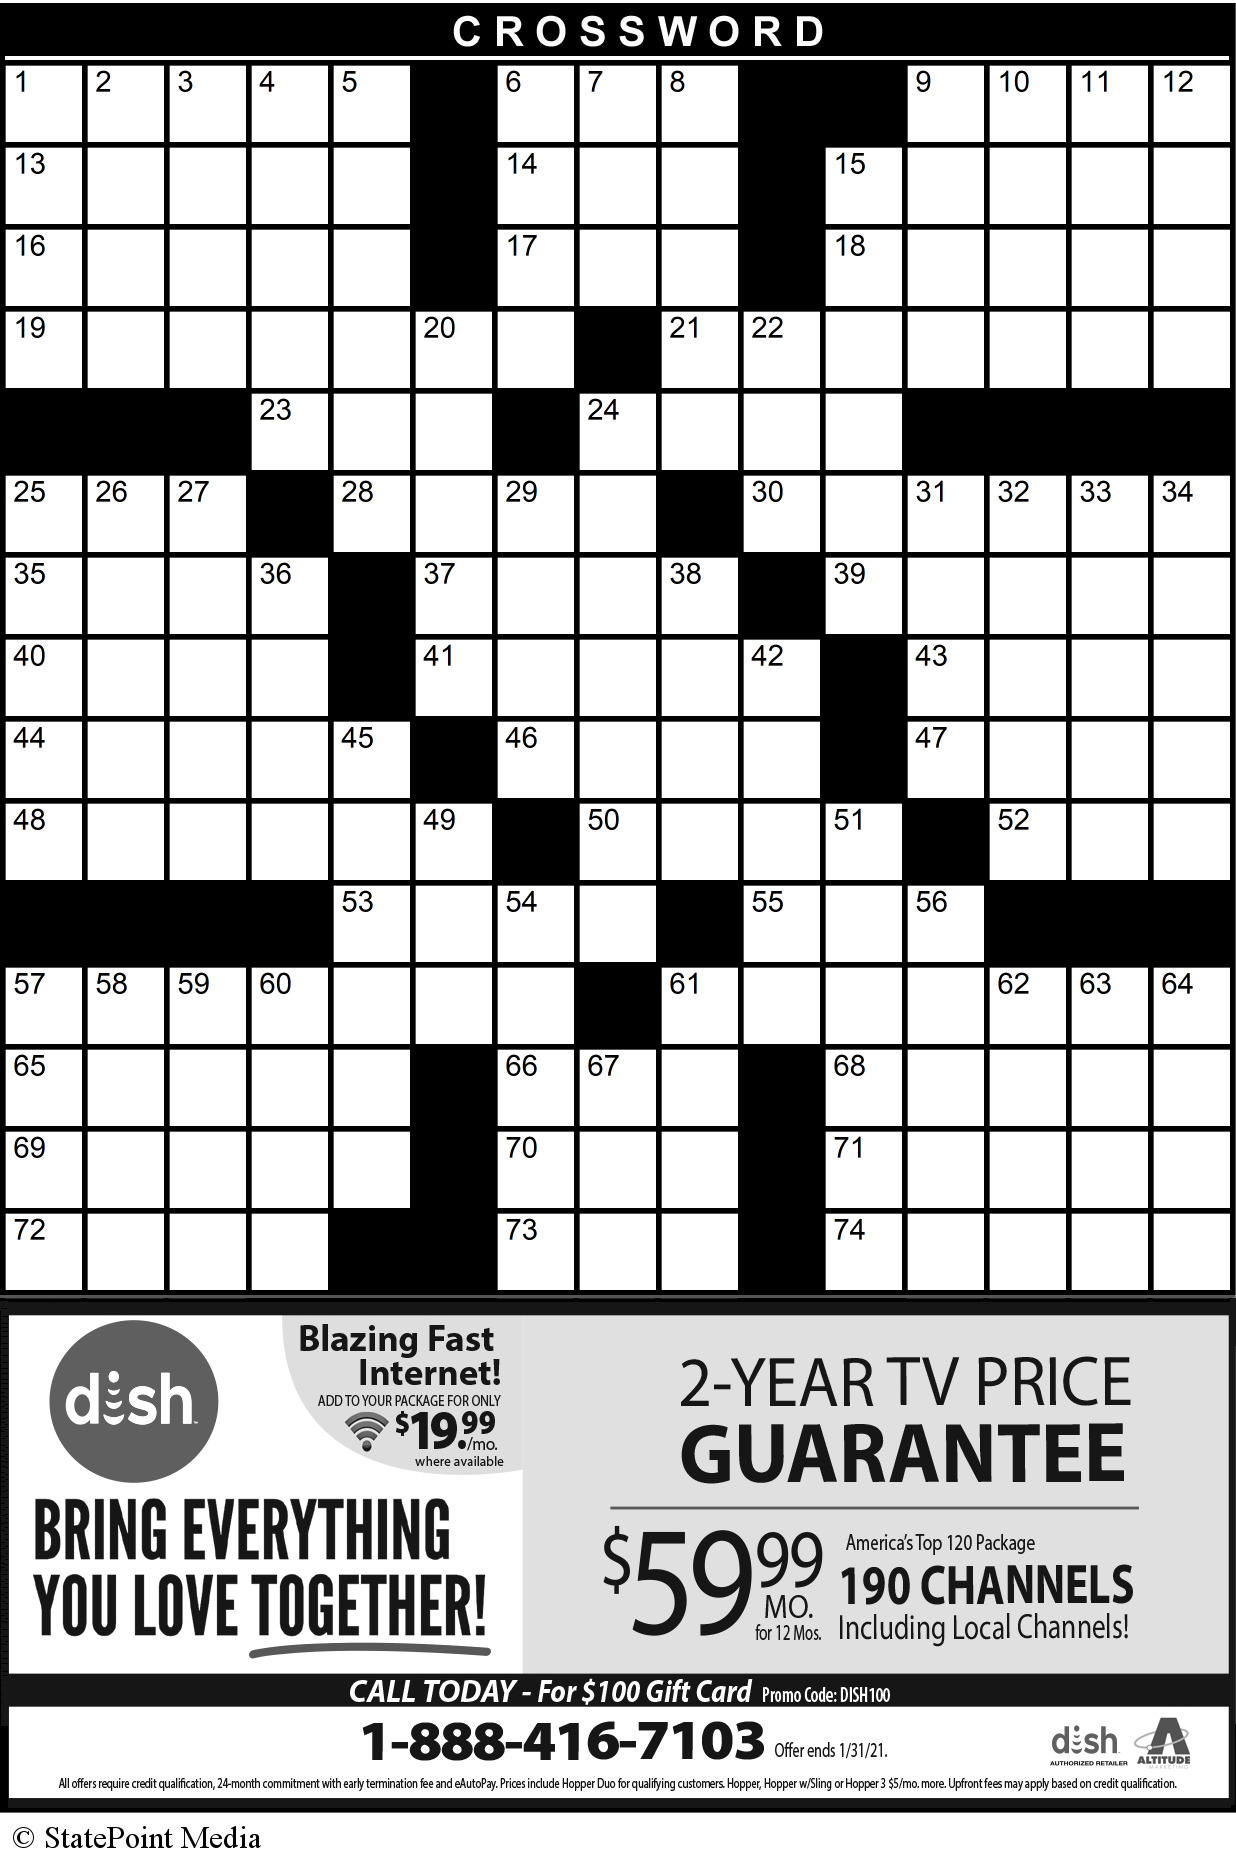 LifeStyle Indy's Crossword Puzzle